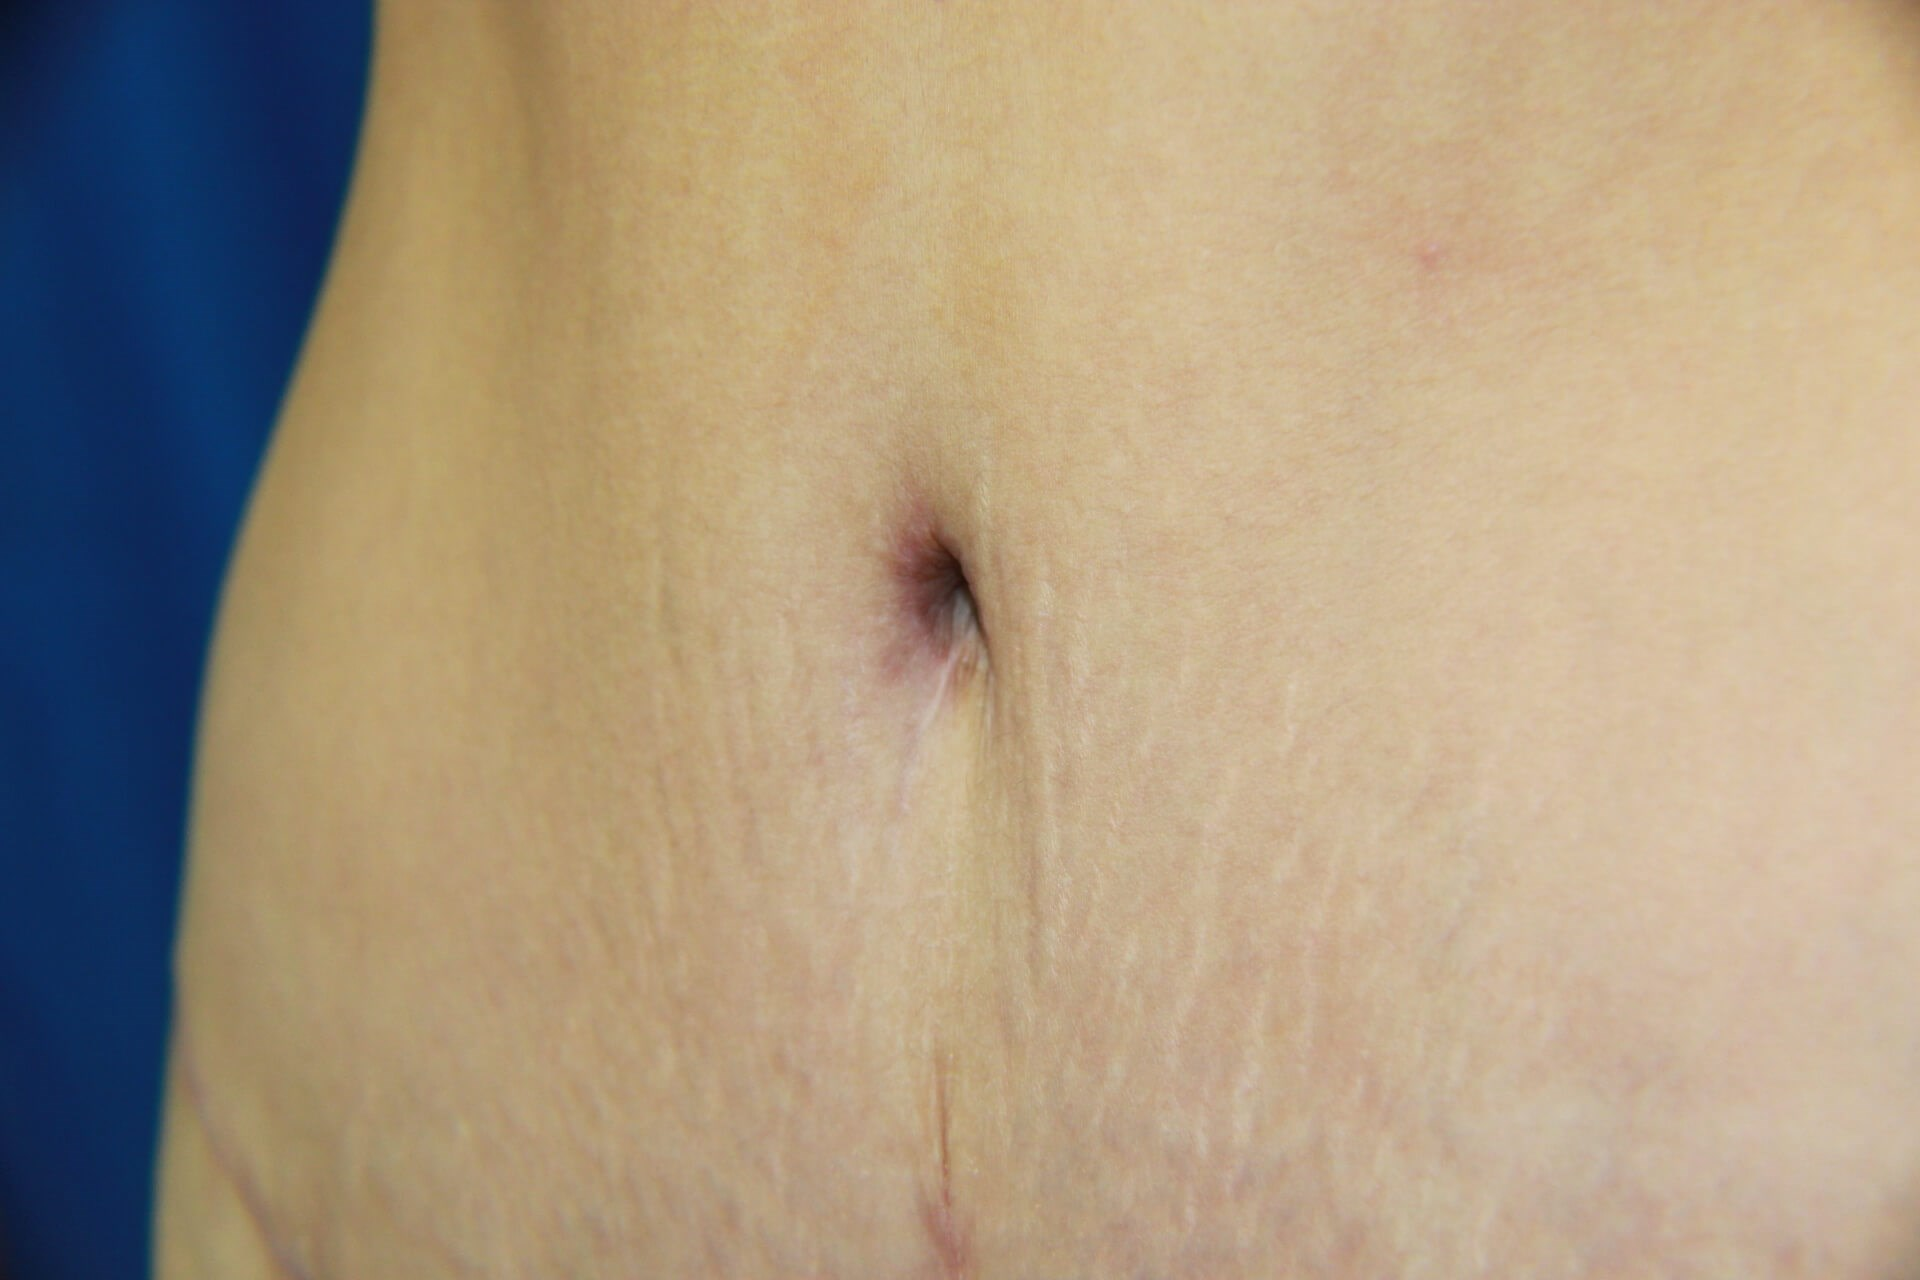 Belly button After Surgery Side View